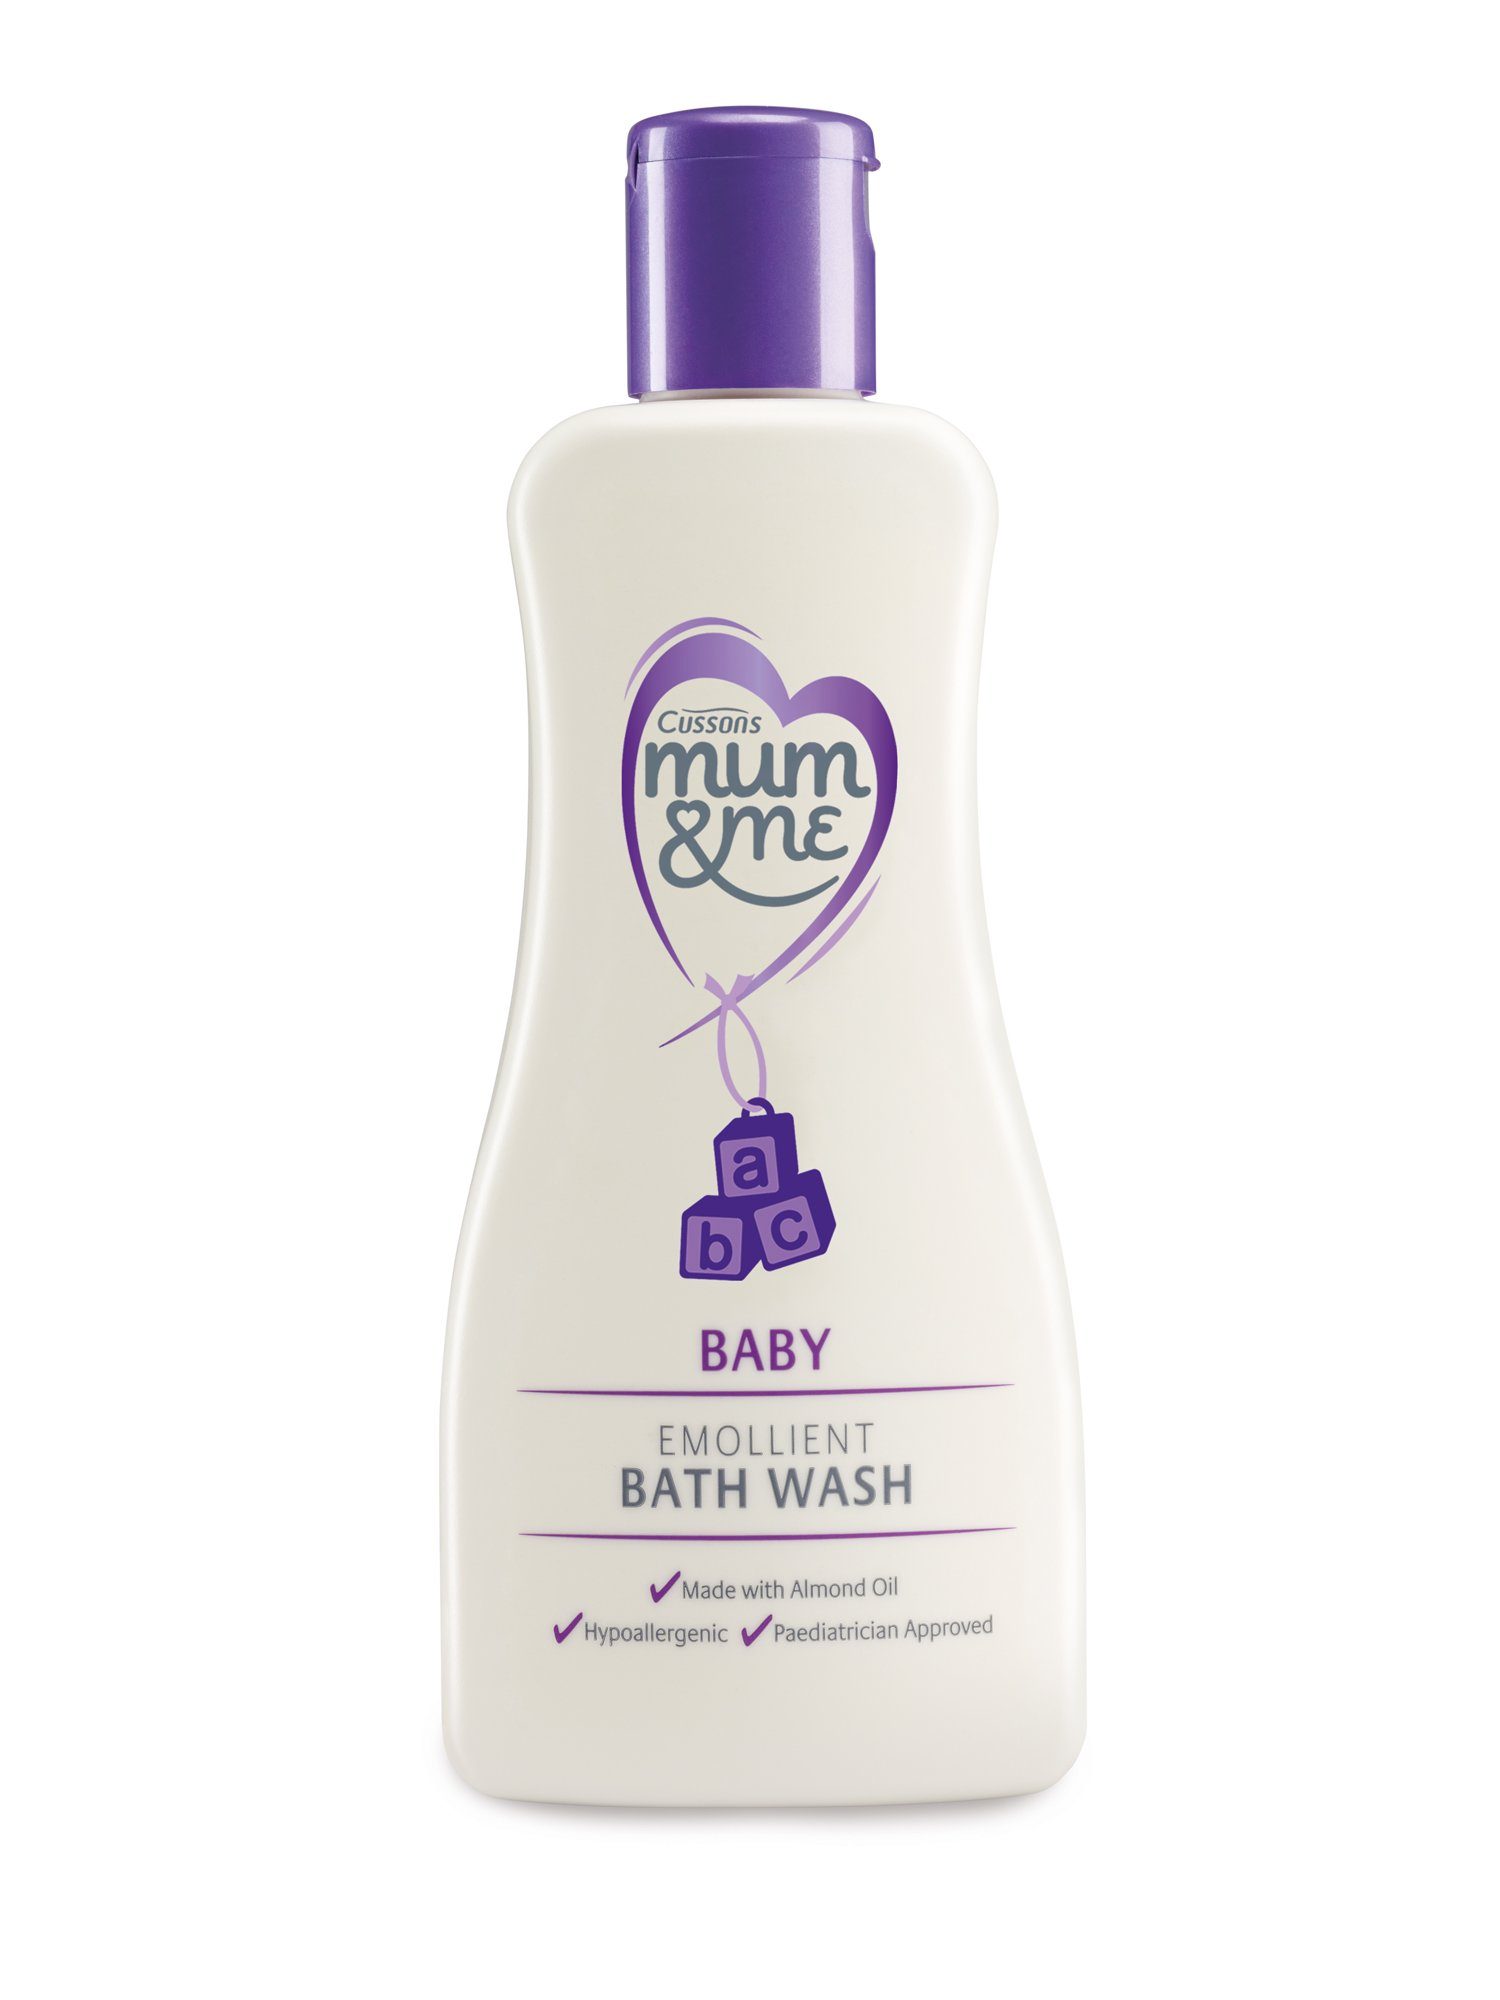 Cussons Mum and Me Baby Emollient Bath Wash